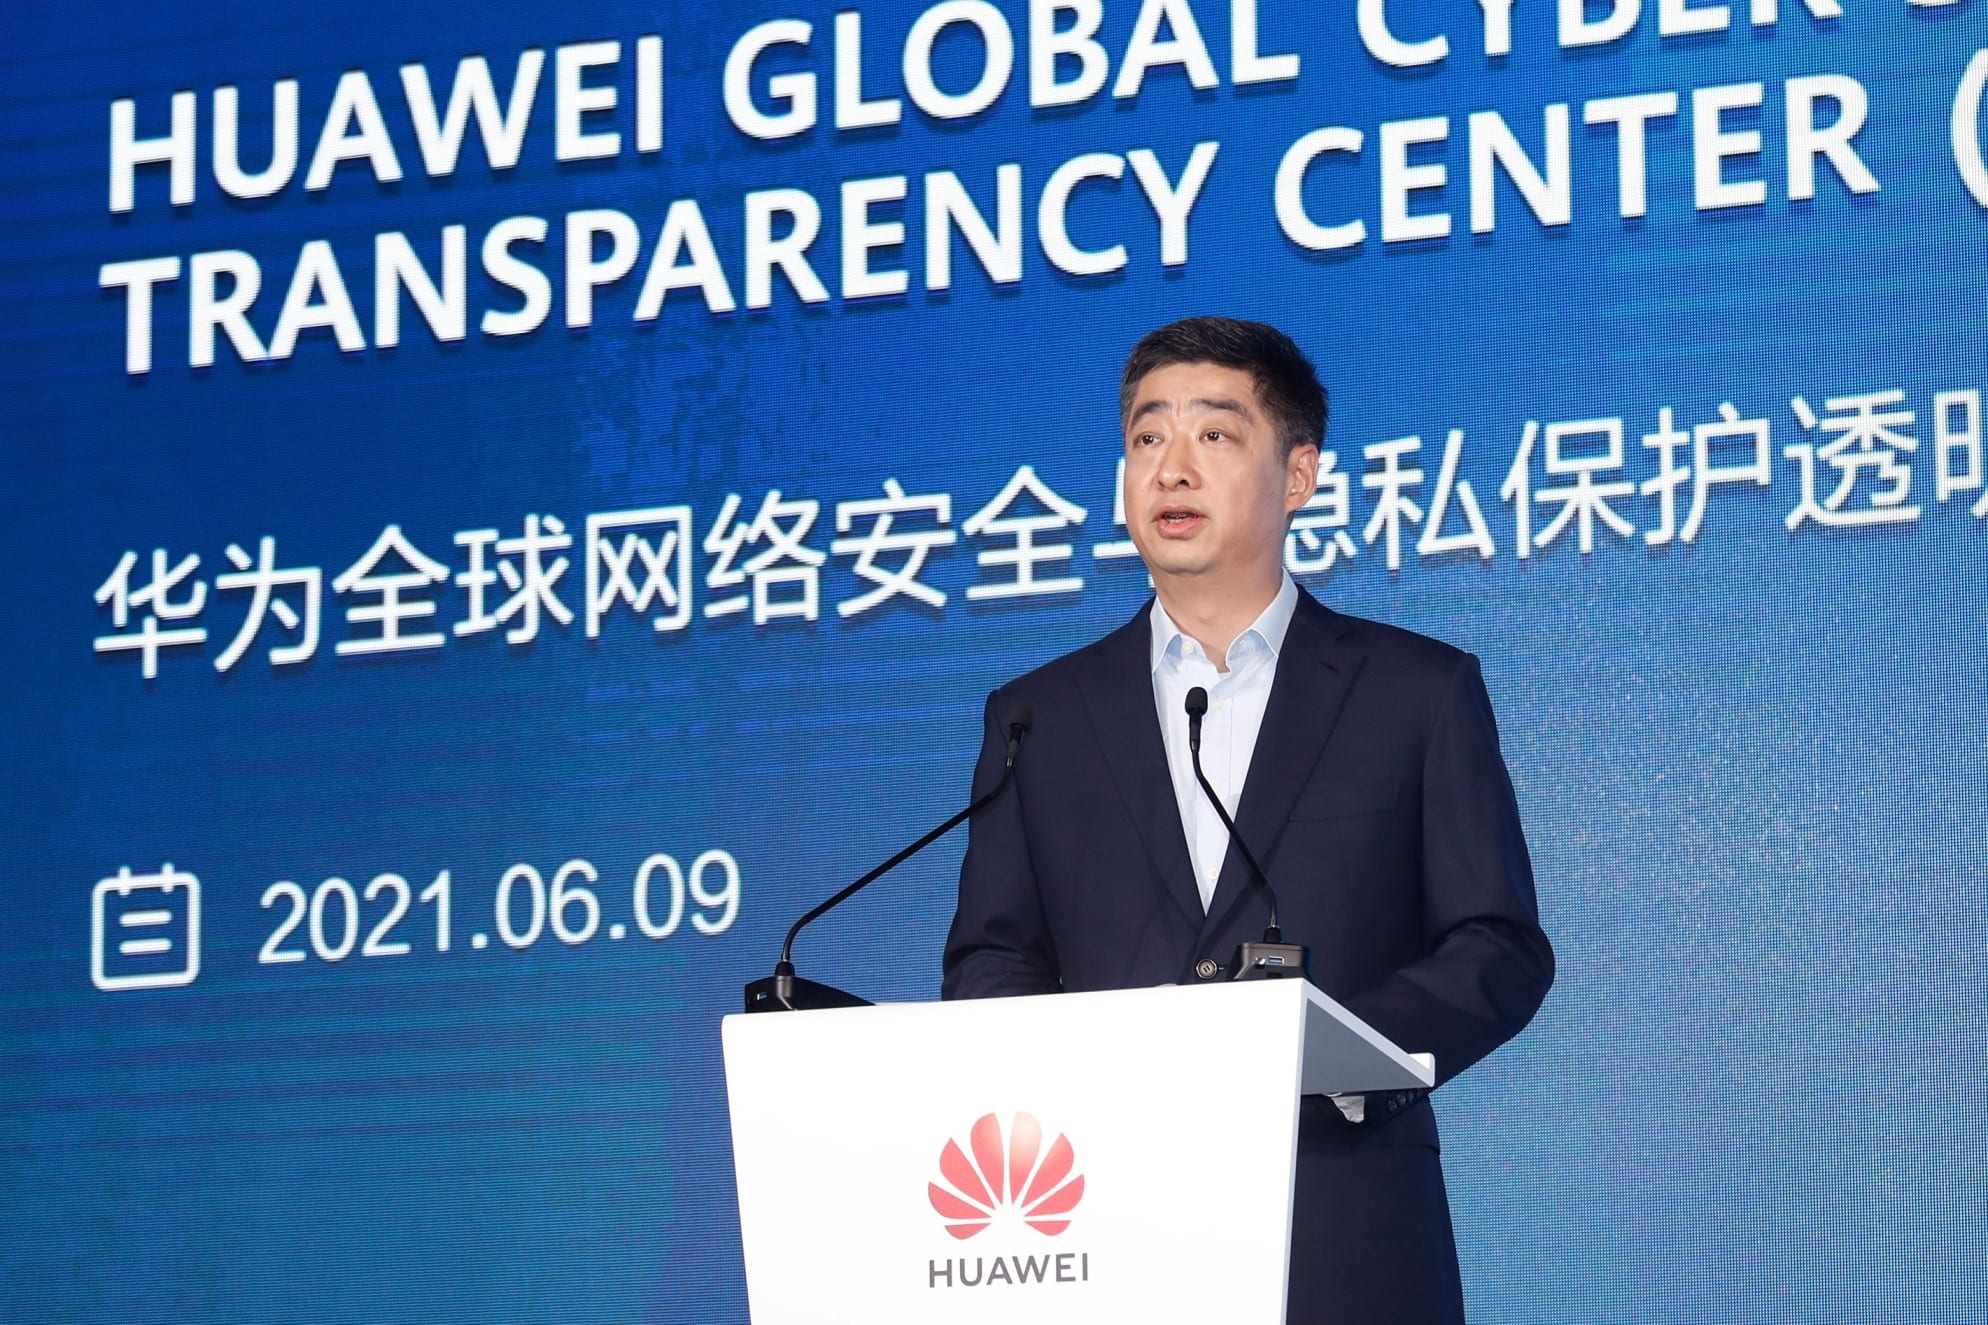 Huawei calls for cybersecurity unity at the launch of Privacy Protection Transparency Center